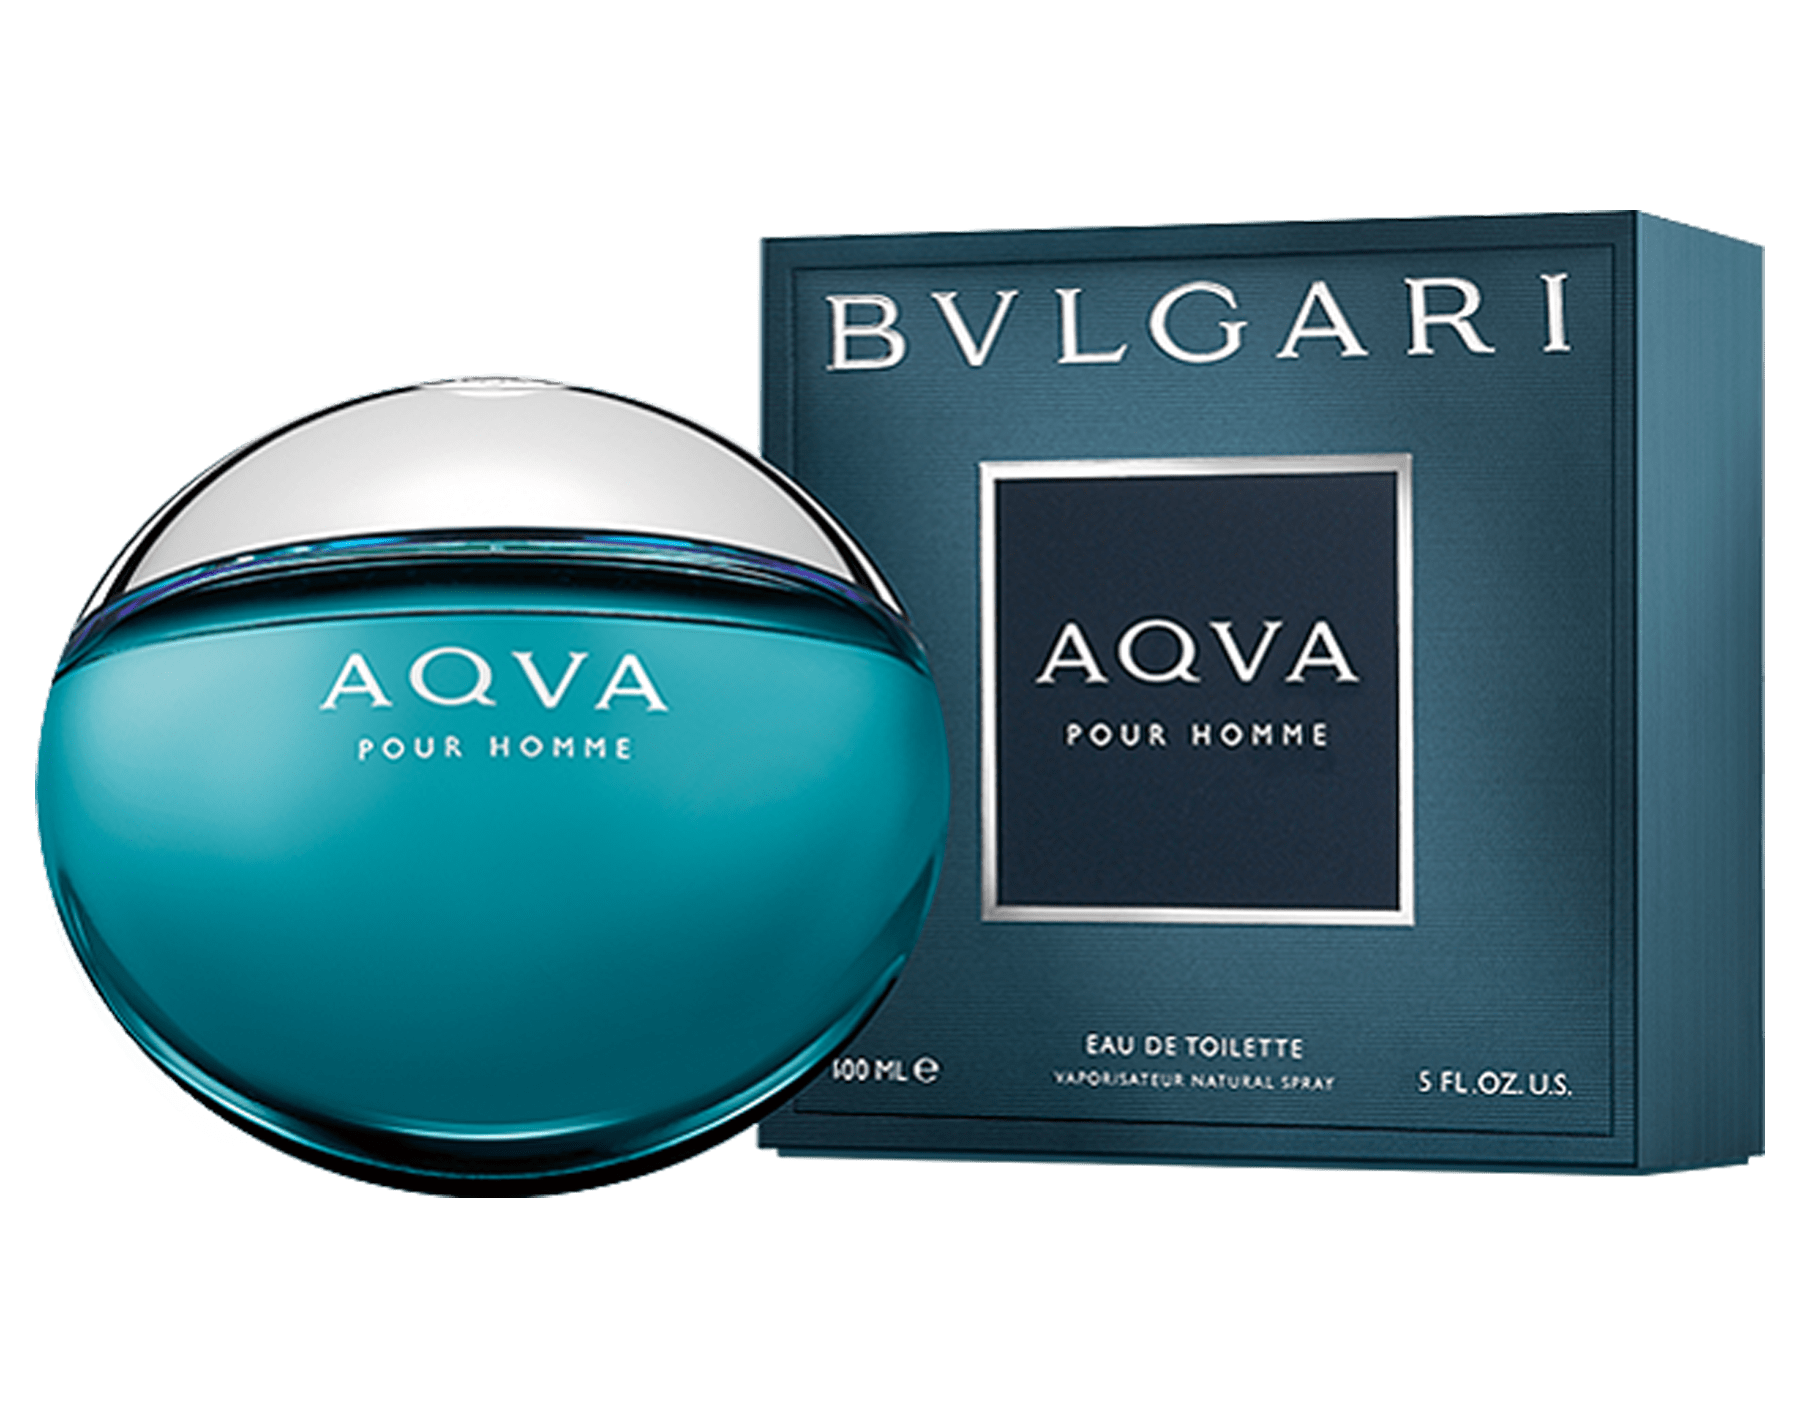 An aquatic eau de toilette. 40255 image 2